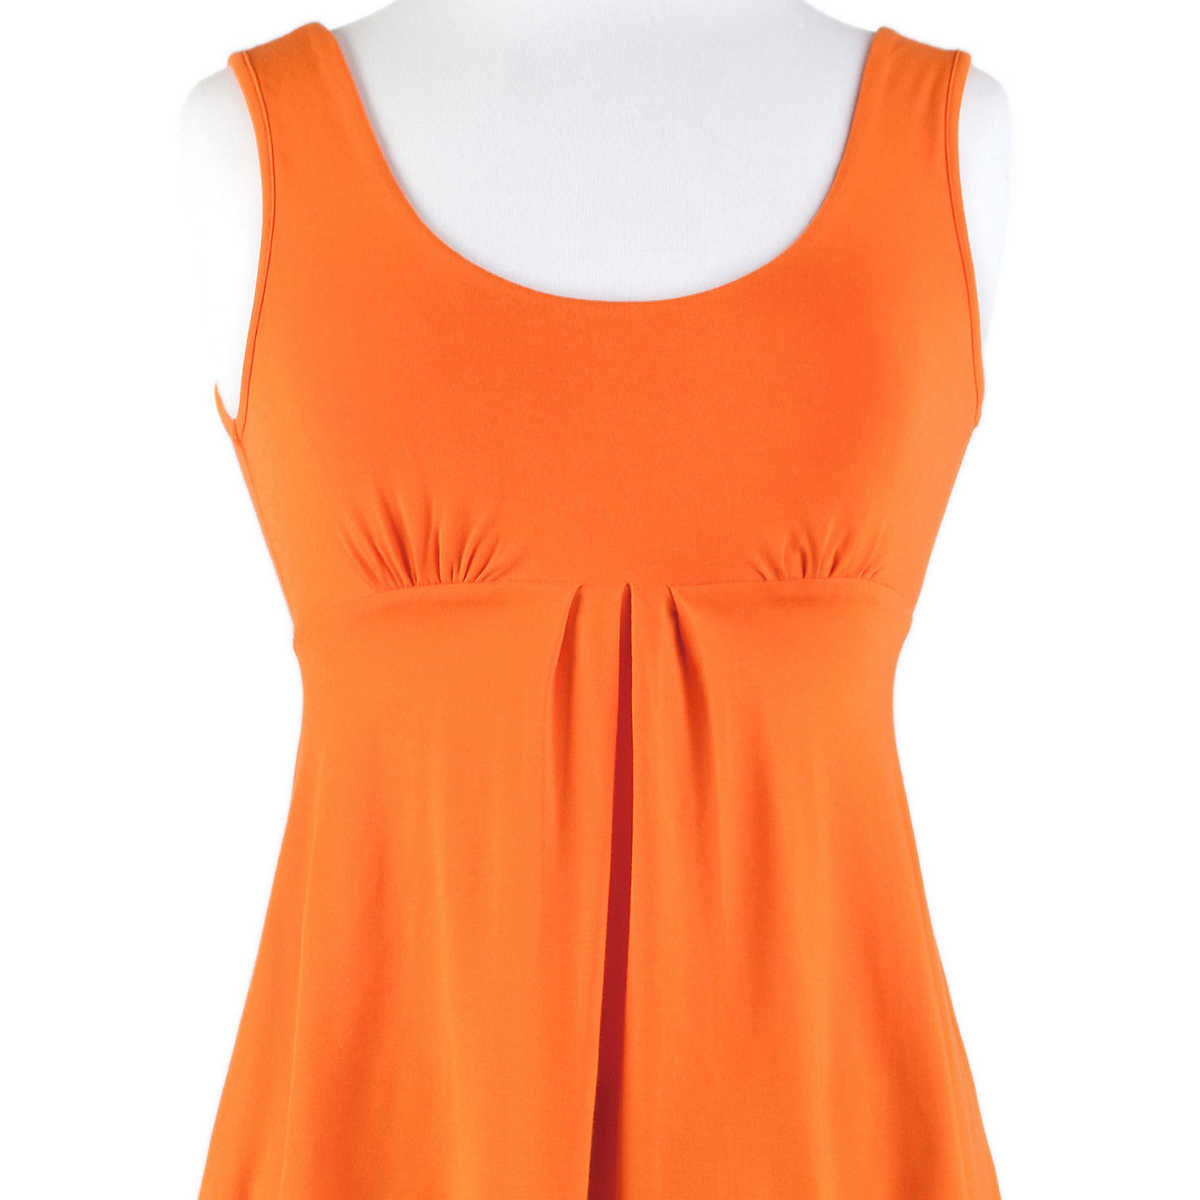 Willow Knit Empire Tank Top Tangerine The Outlet